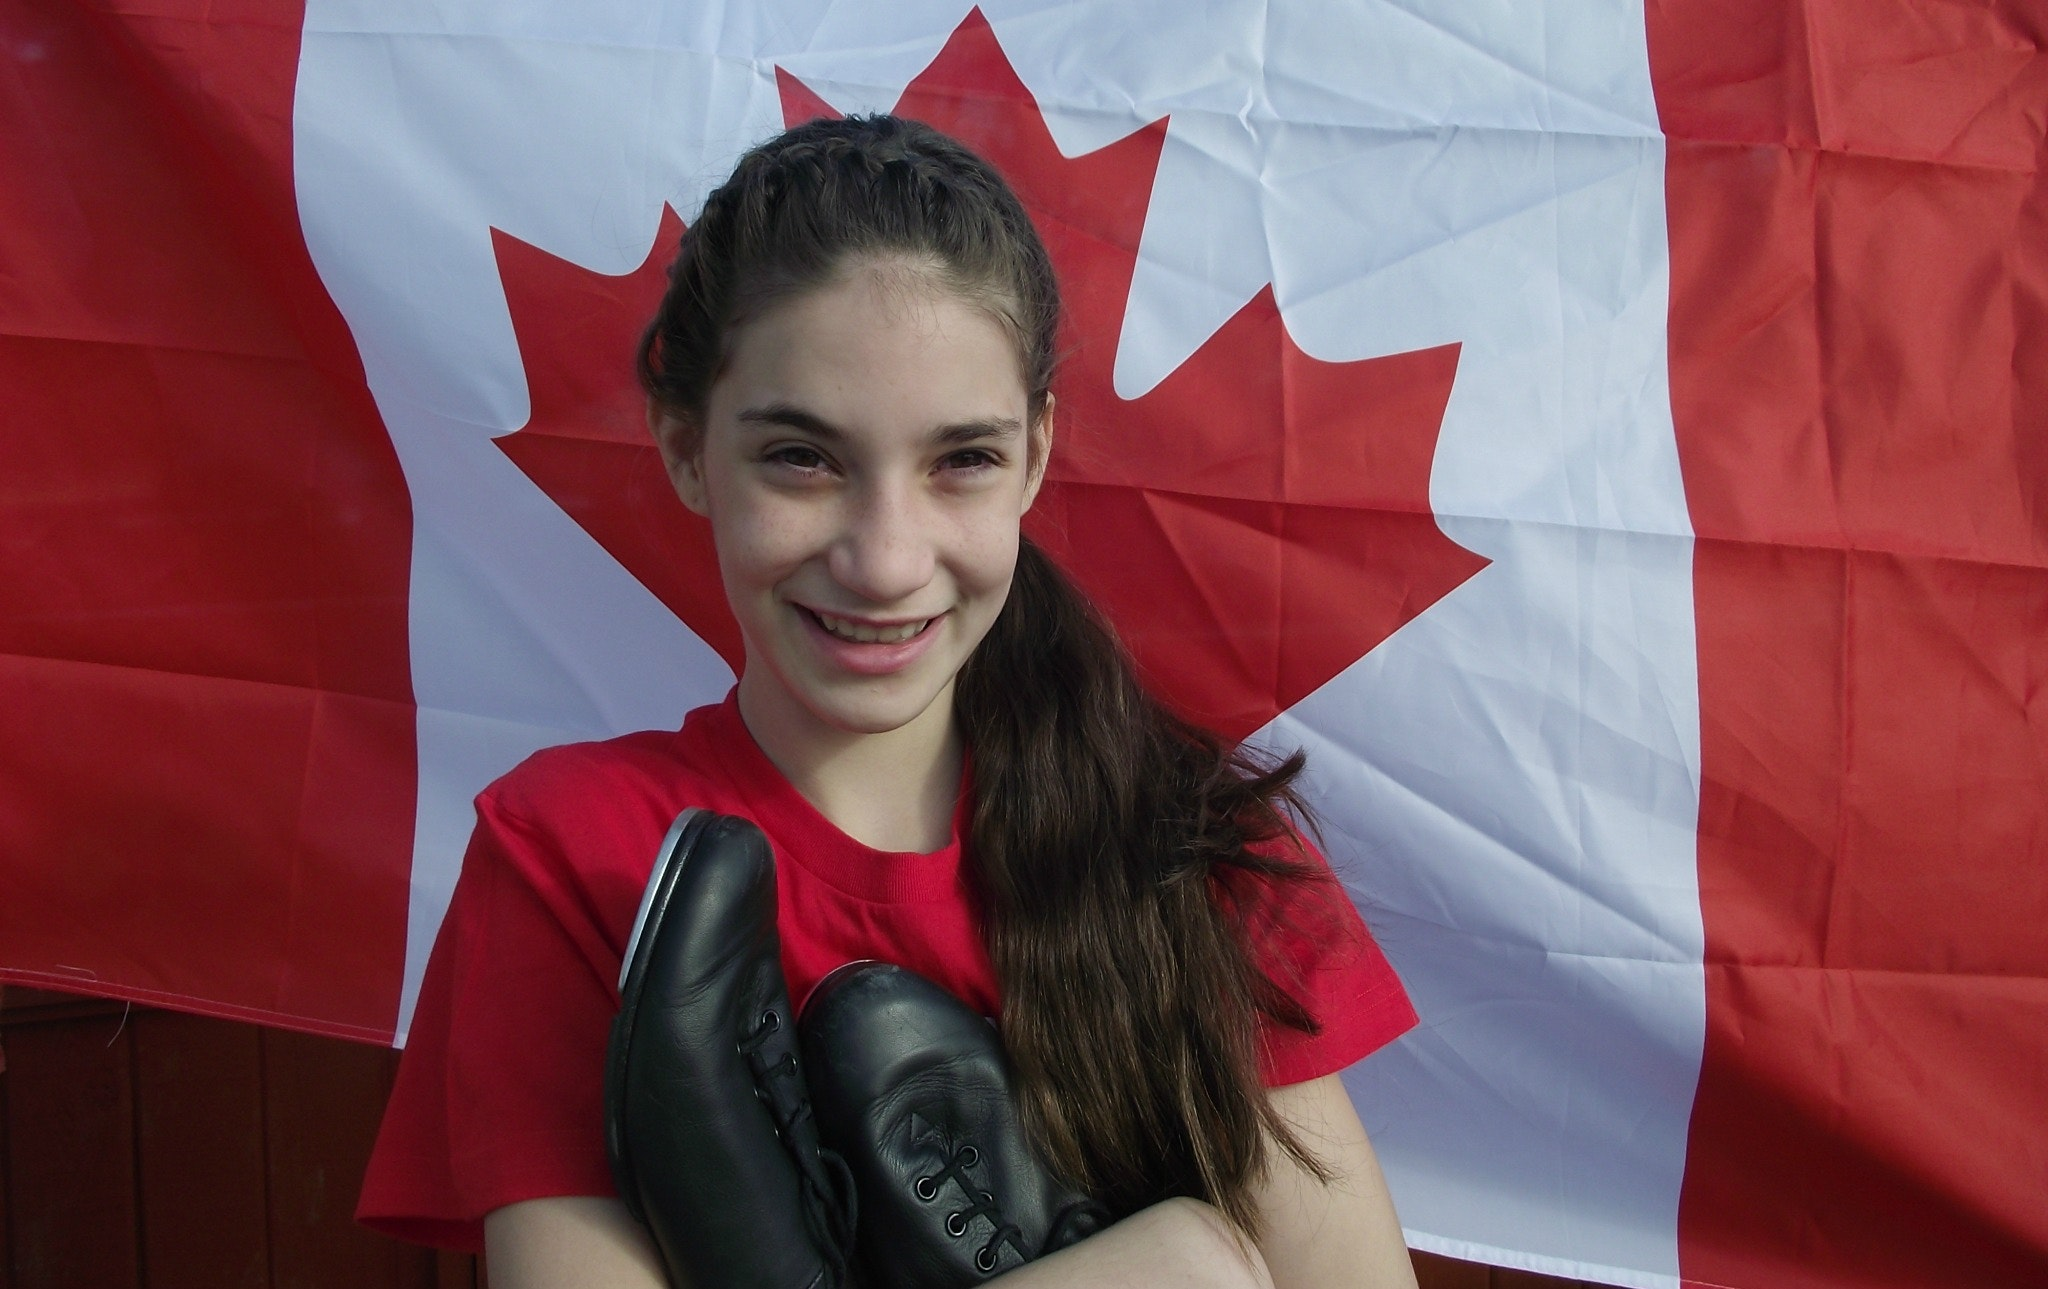 Kaprice's Team Canada Tap Dance Fund